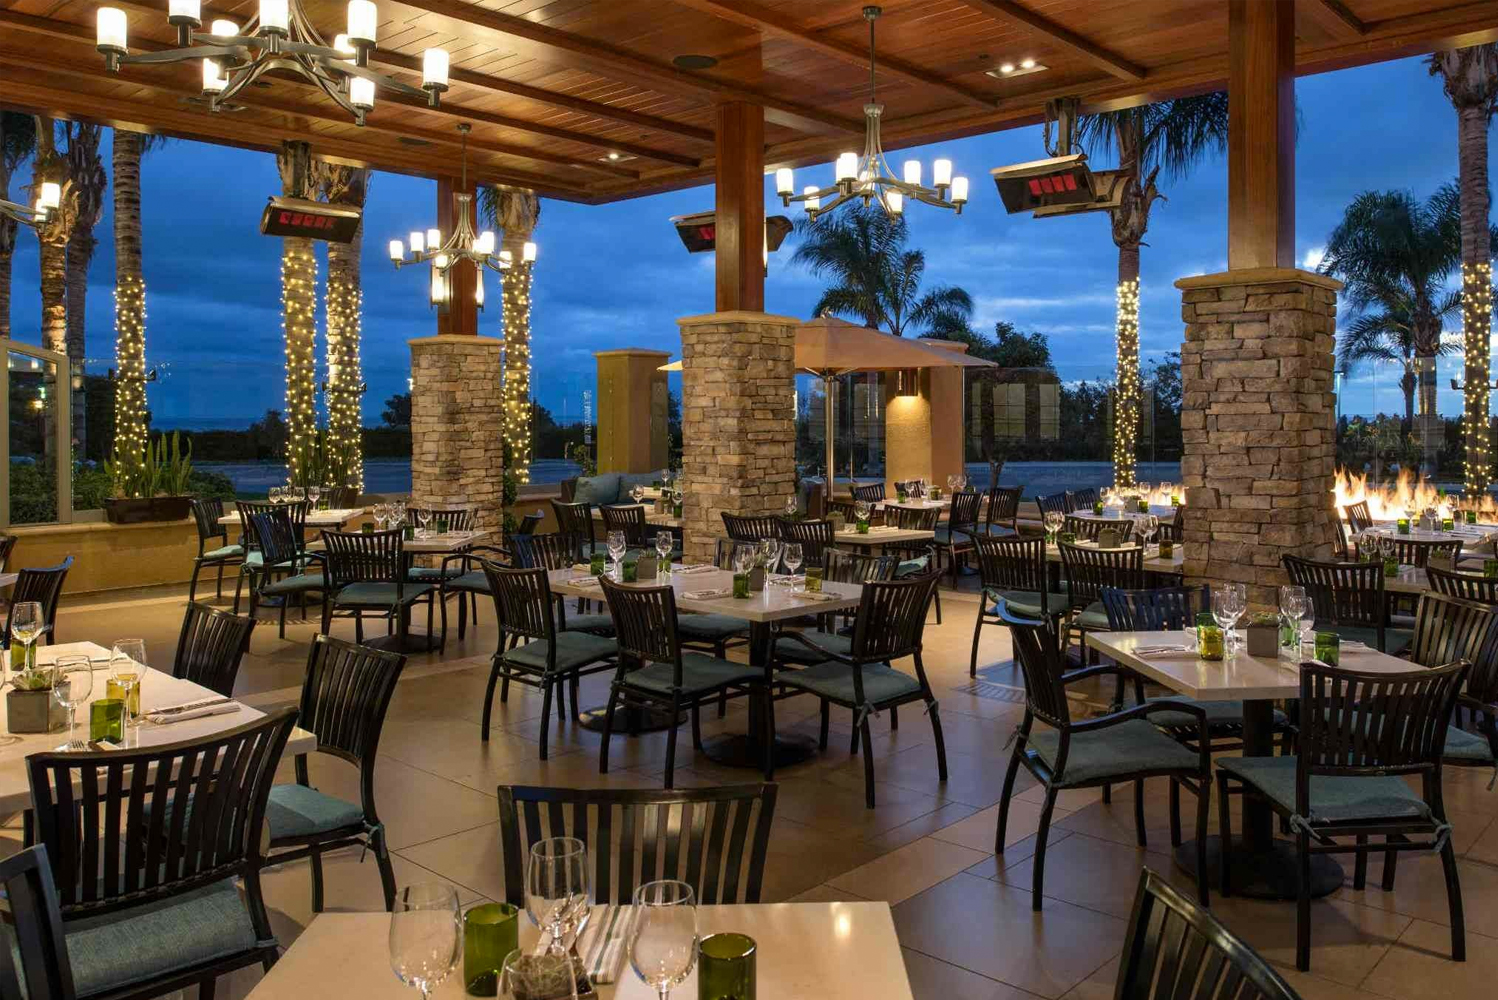 The Westin Carlsbad Resort & Spa will also have a private rooftop terrace for group and private functions.